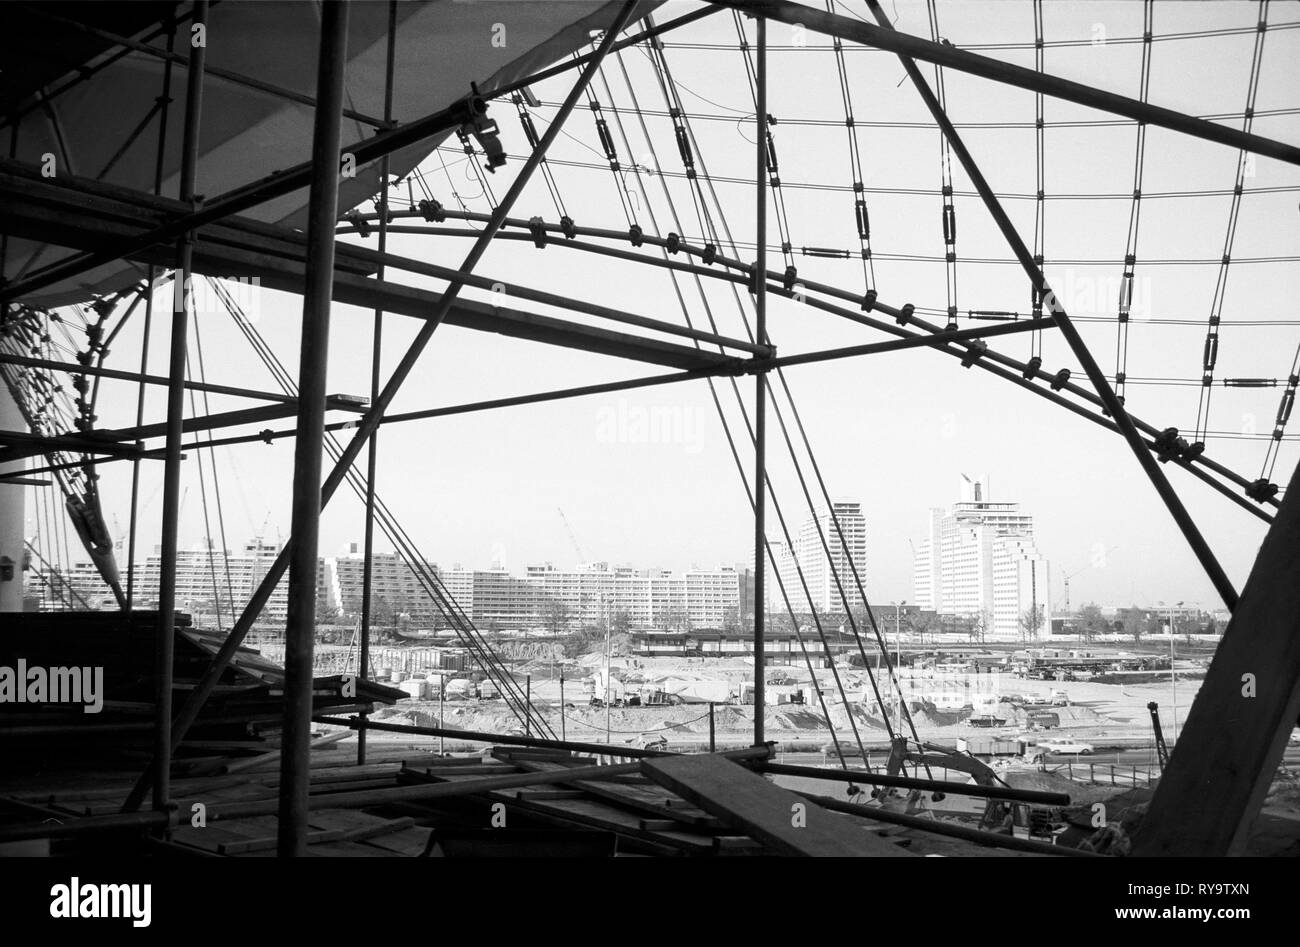 The Munich Olympic Park under construction for the Games 72. View from the Swim Hall to the Village. Blick aus dem Schwimmstadion auf das Olympiadorf - Stock Image